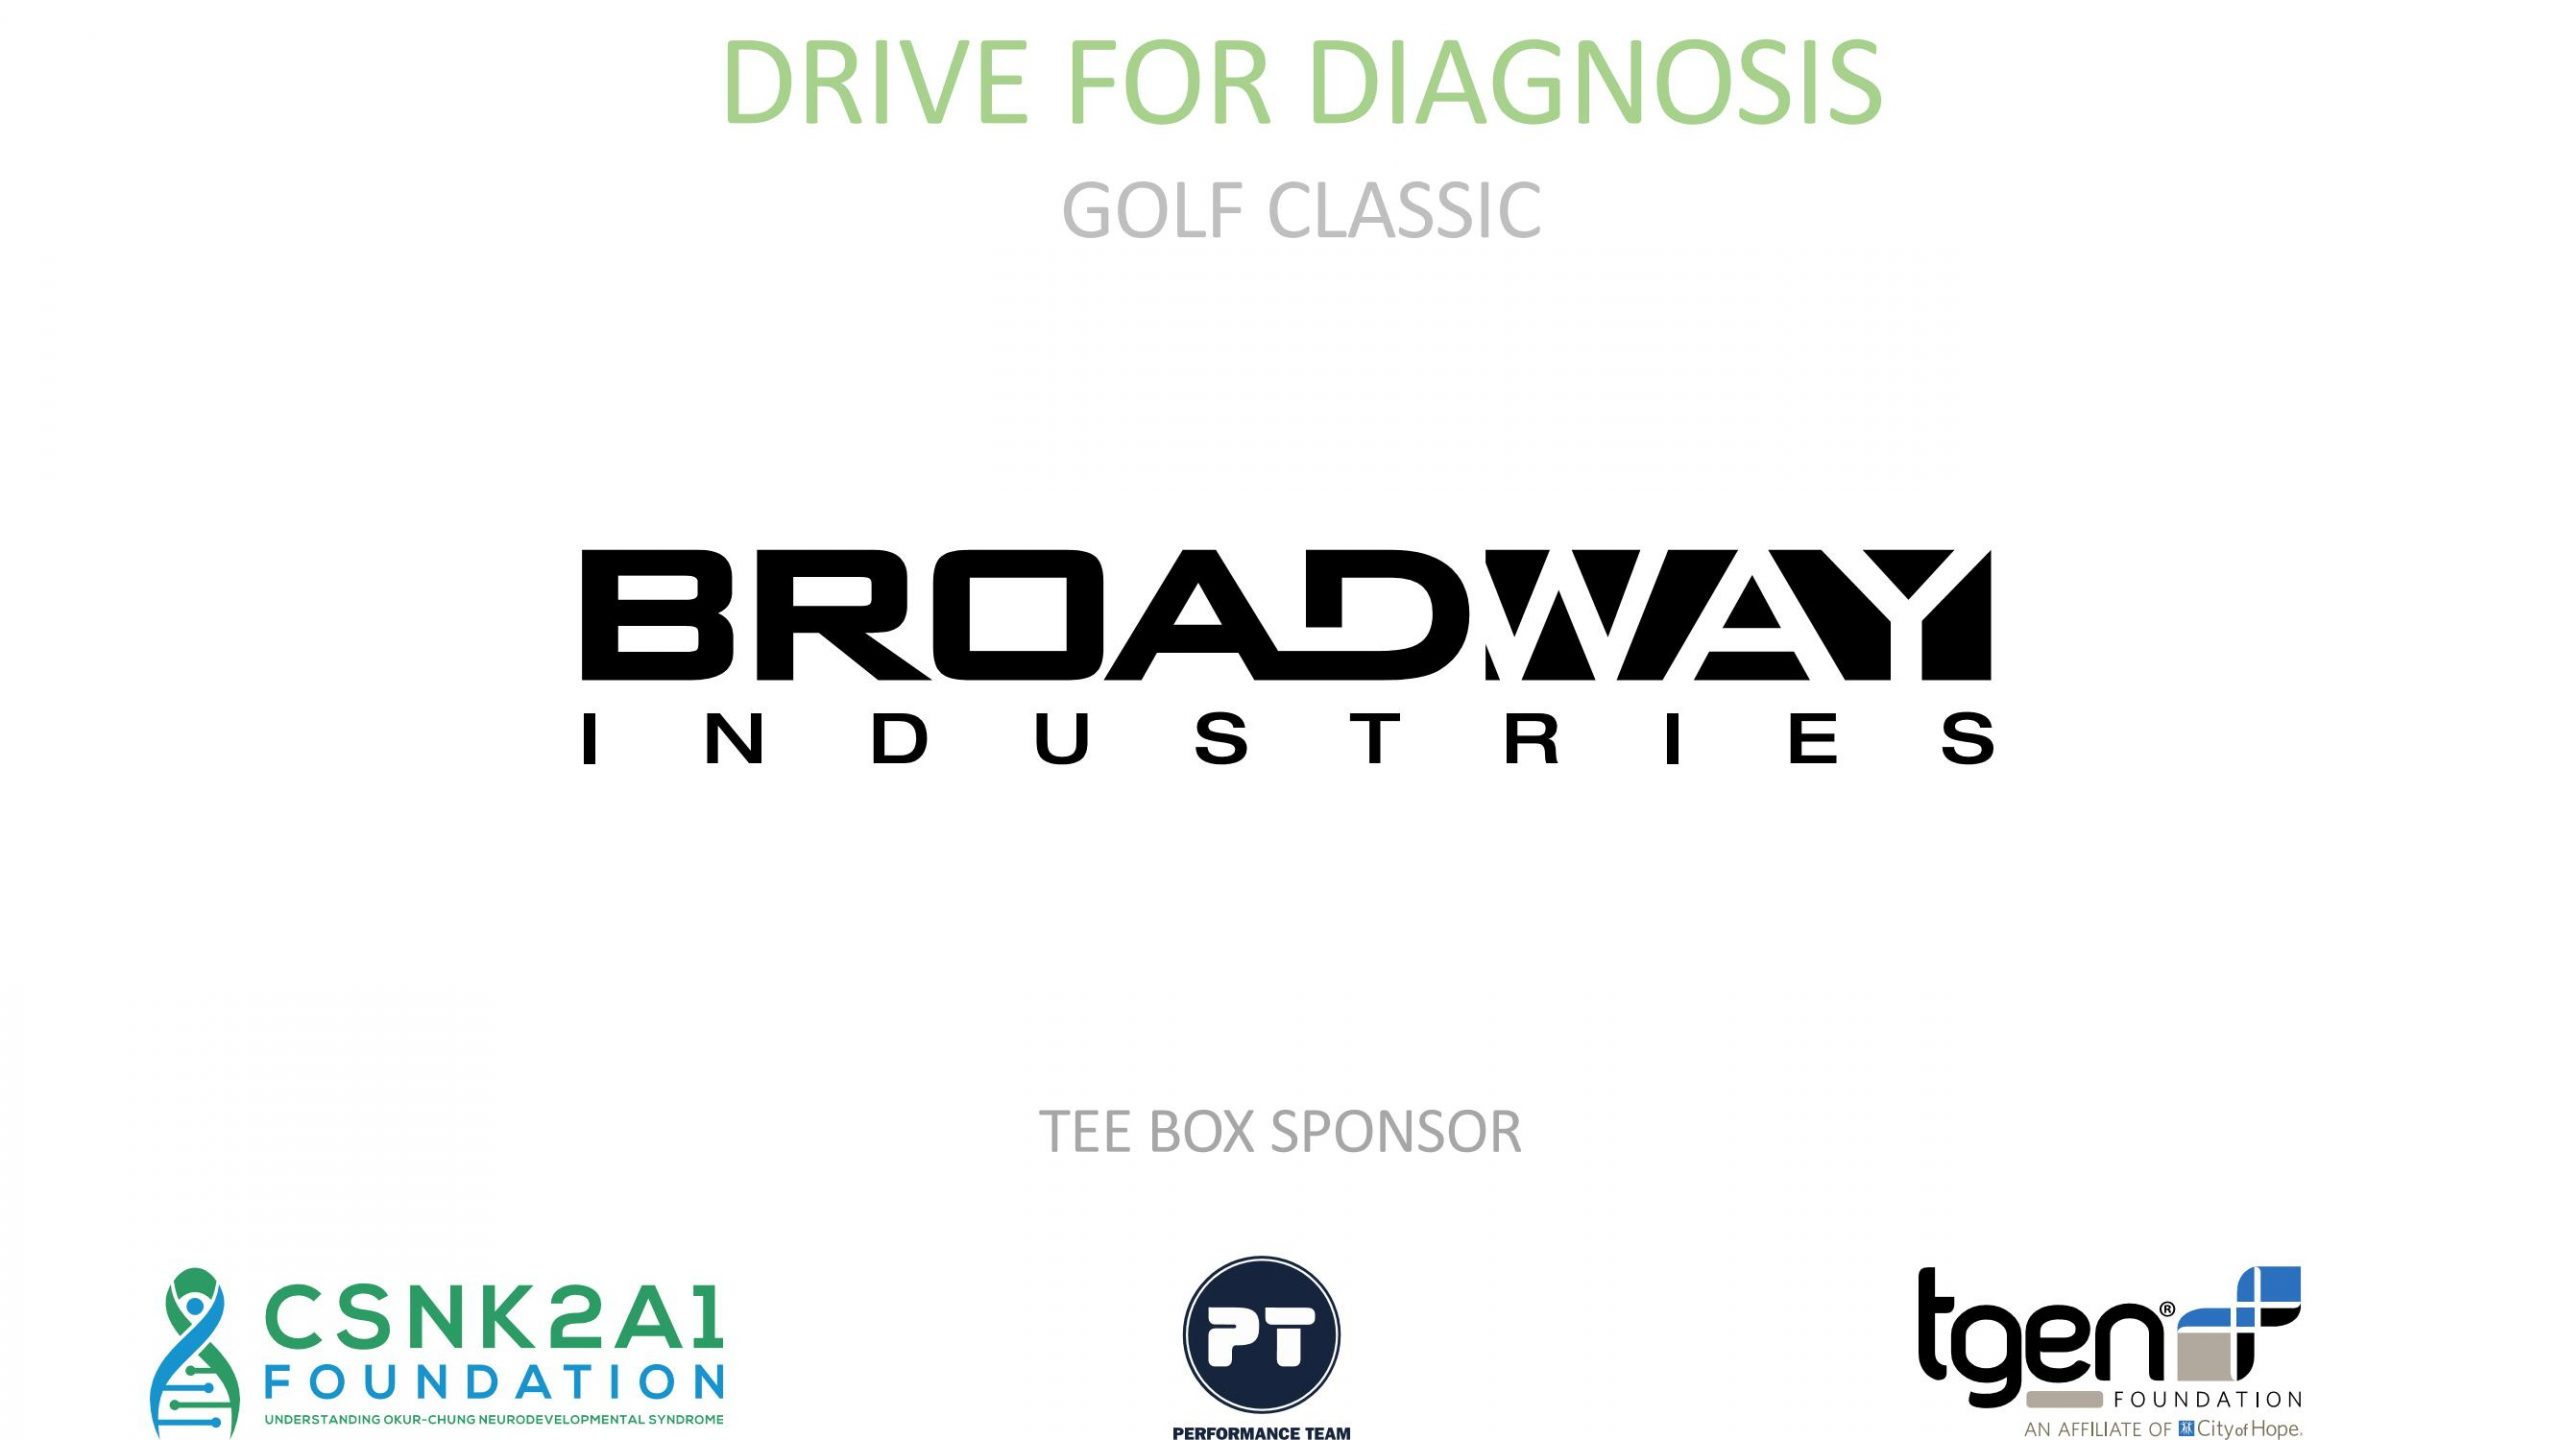 Tee Box Sponsor - Broadway Industries